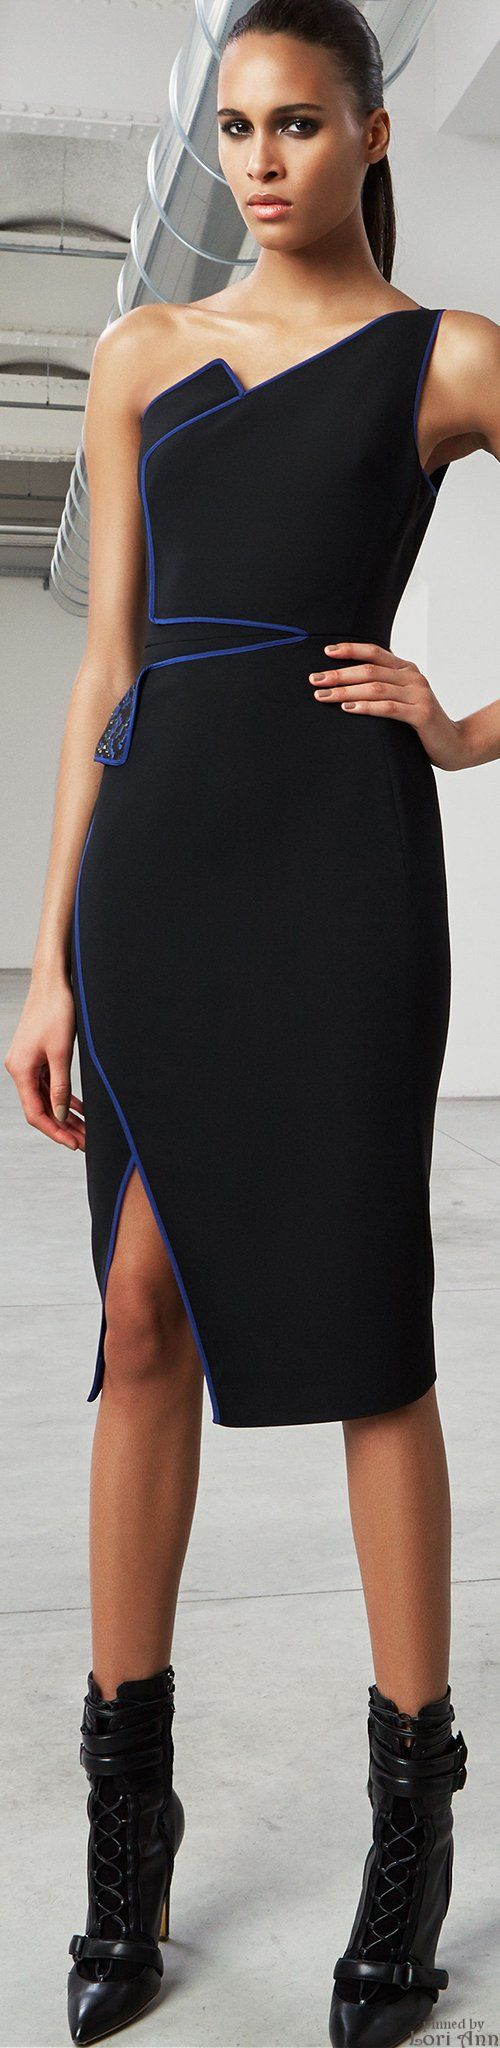 Antonio Berardi Pre-Fall 2015 black dress  women fashion outfit clothing style apparel @roressclothes closet ideas